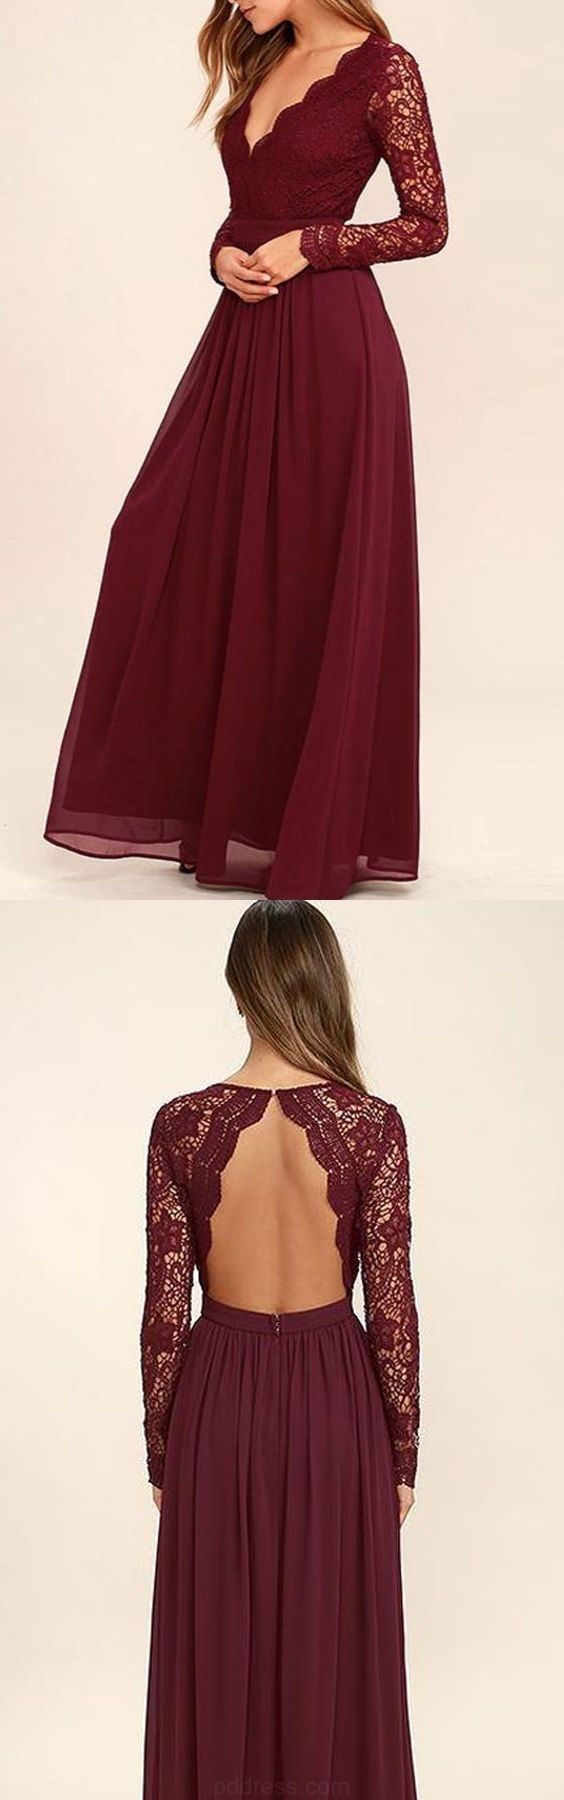 Fetching prom dresses vneck long sleevs dark burgundy lace chiffon